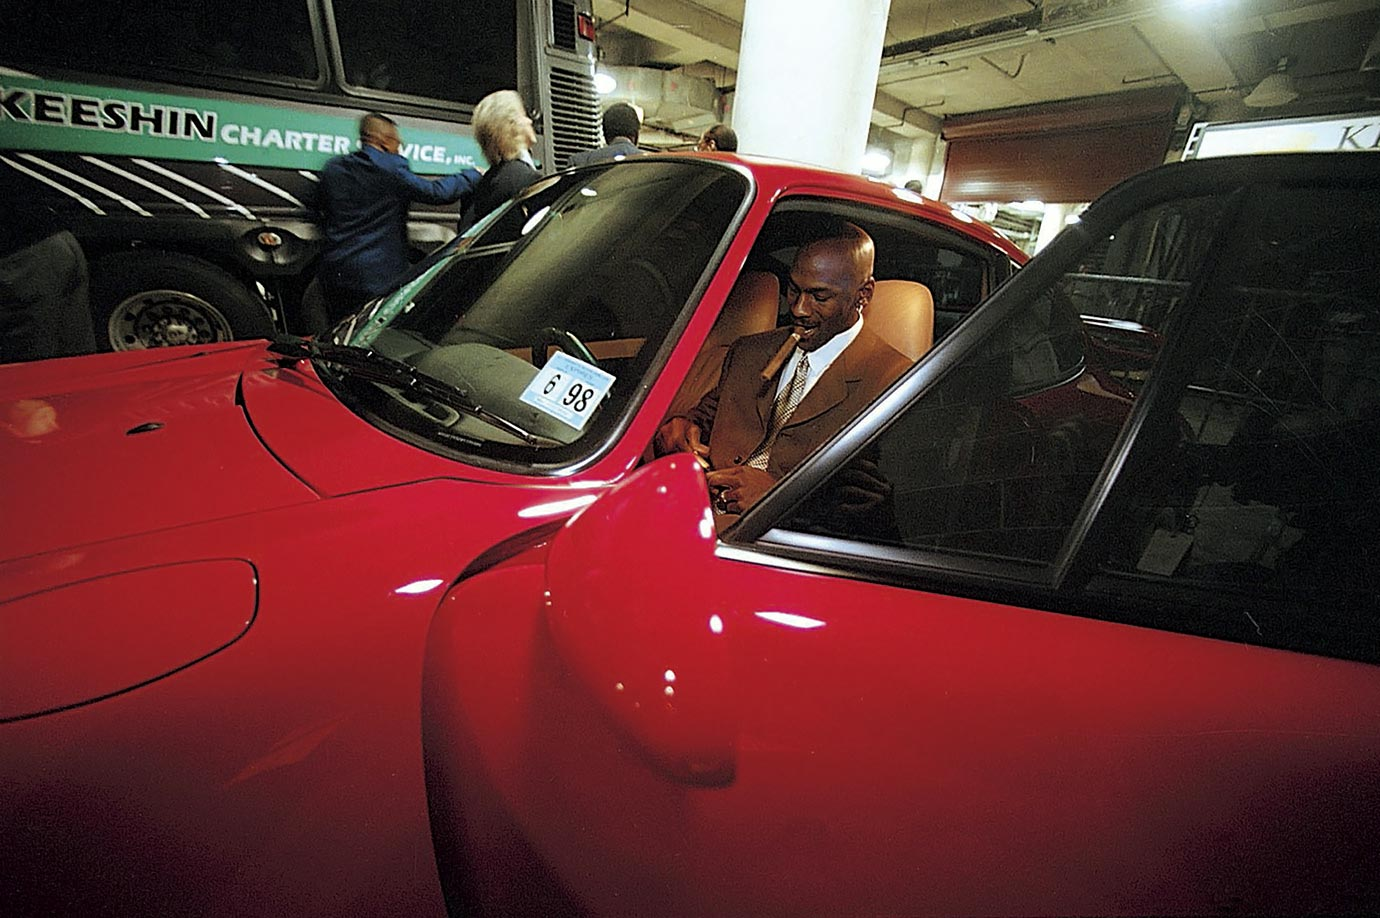 Michael Jordan readies a cigar in his Porsche after a home game in 1998.